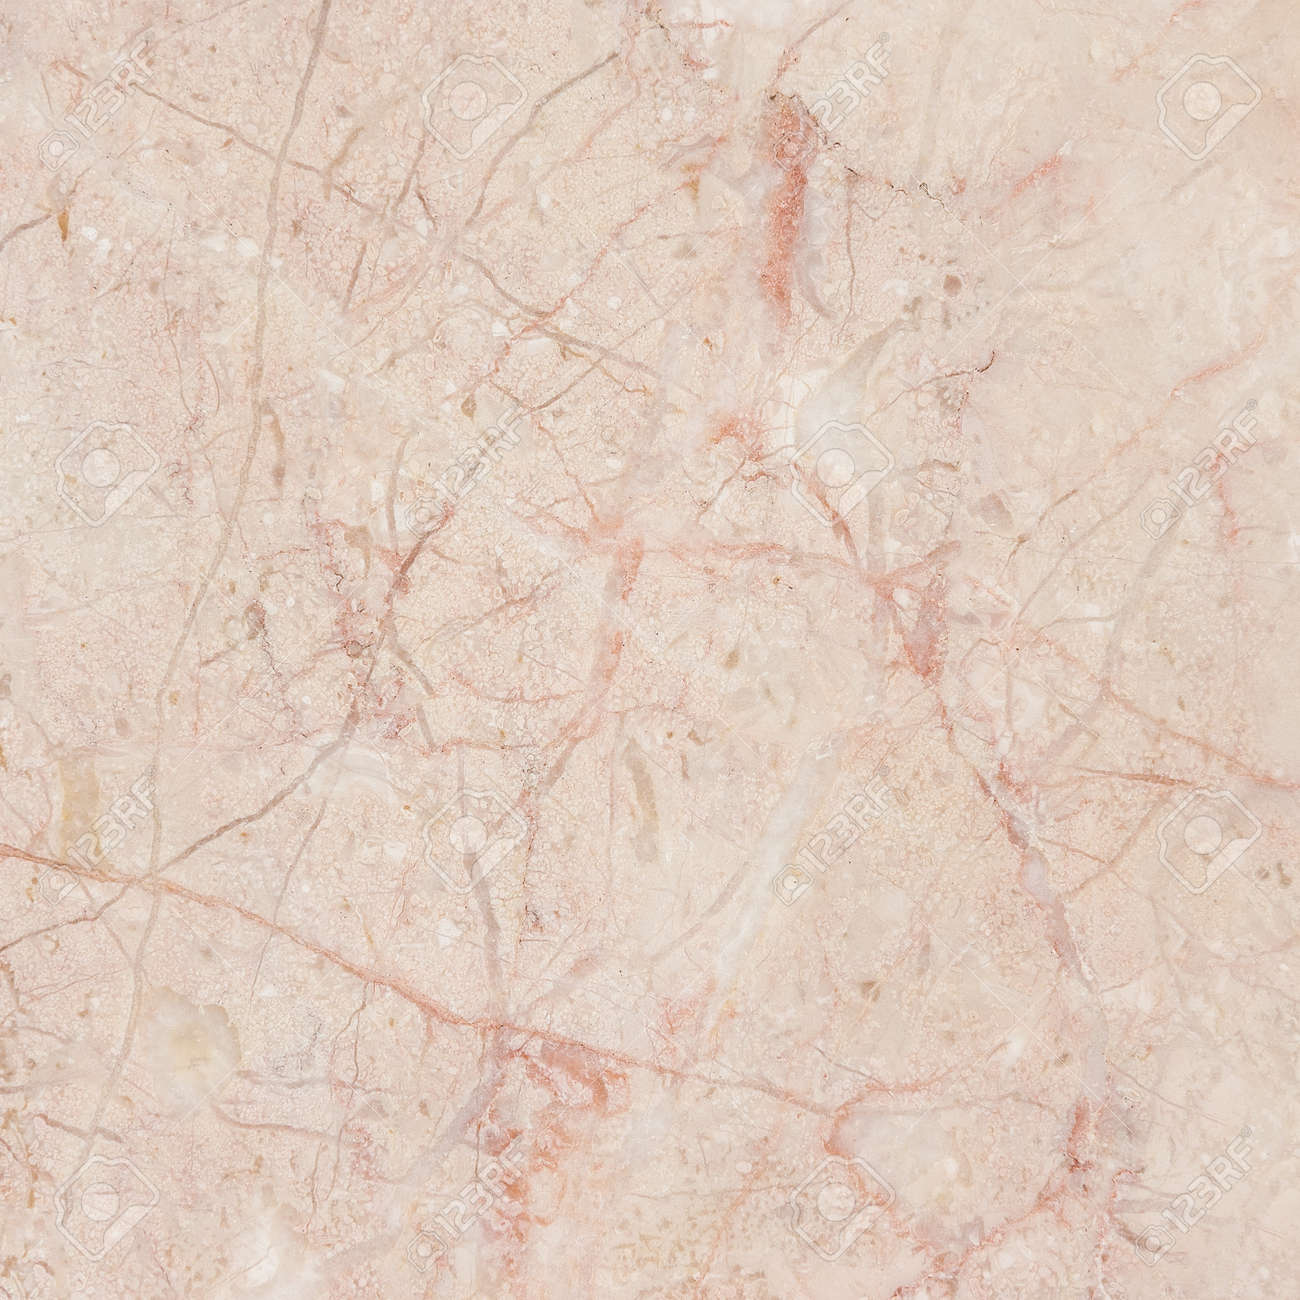 Pink Italian Marble With Natural Pattern Natural Marble Texture Stock Photo Picture And Royalty Free Image Image 55020871